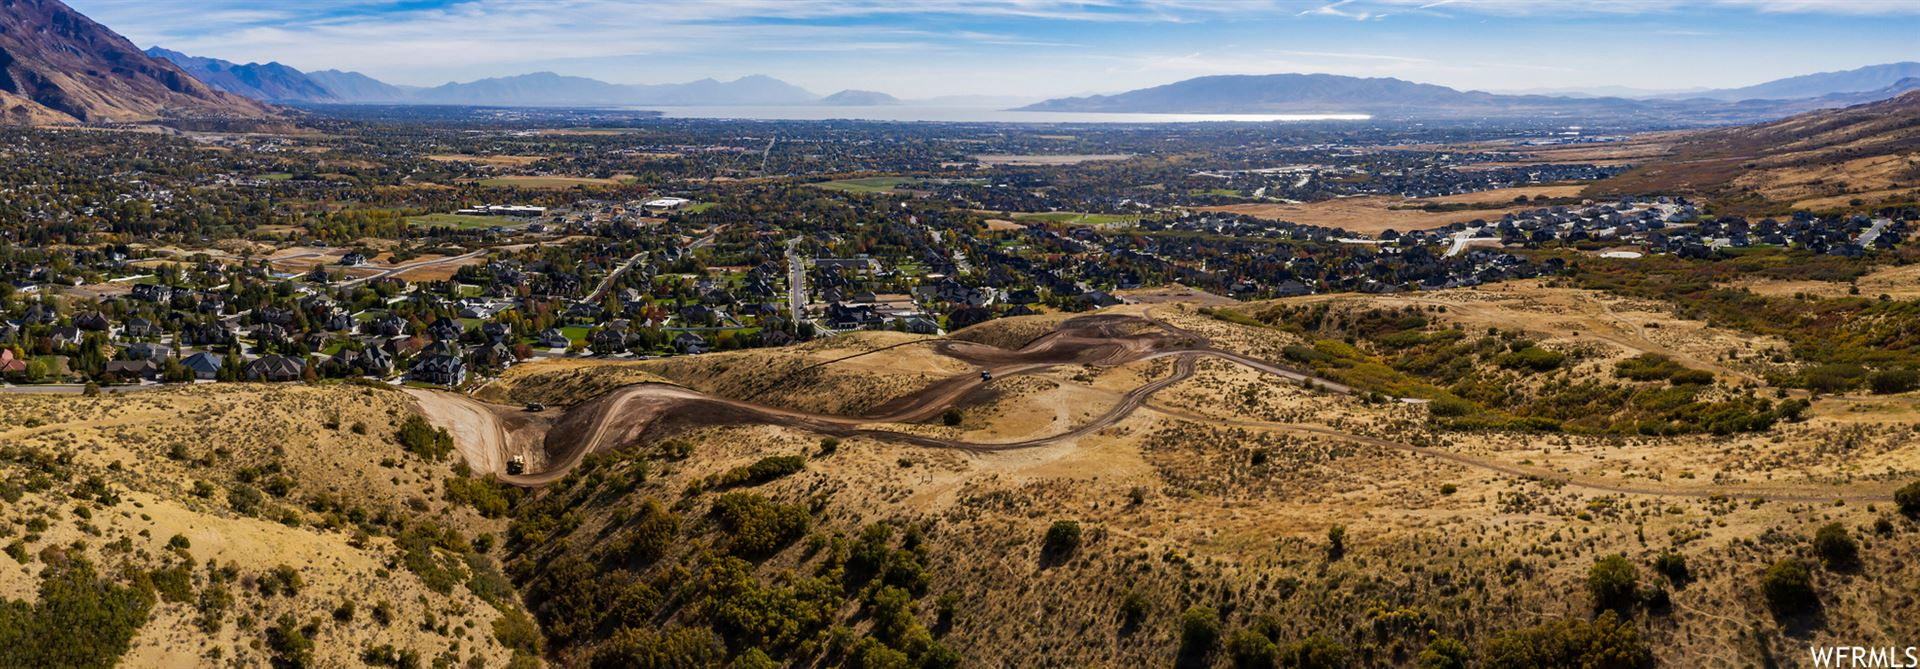 Photo of 812 W LAKEVIEW DR #1, Alpine, UT 84004 (MLS # 1710775)